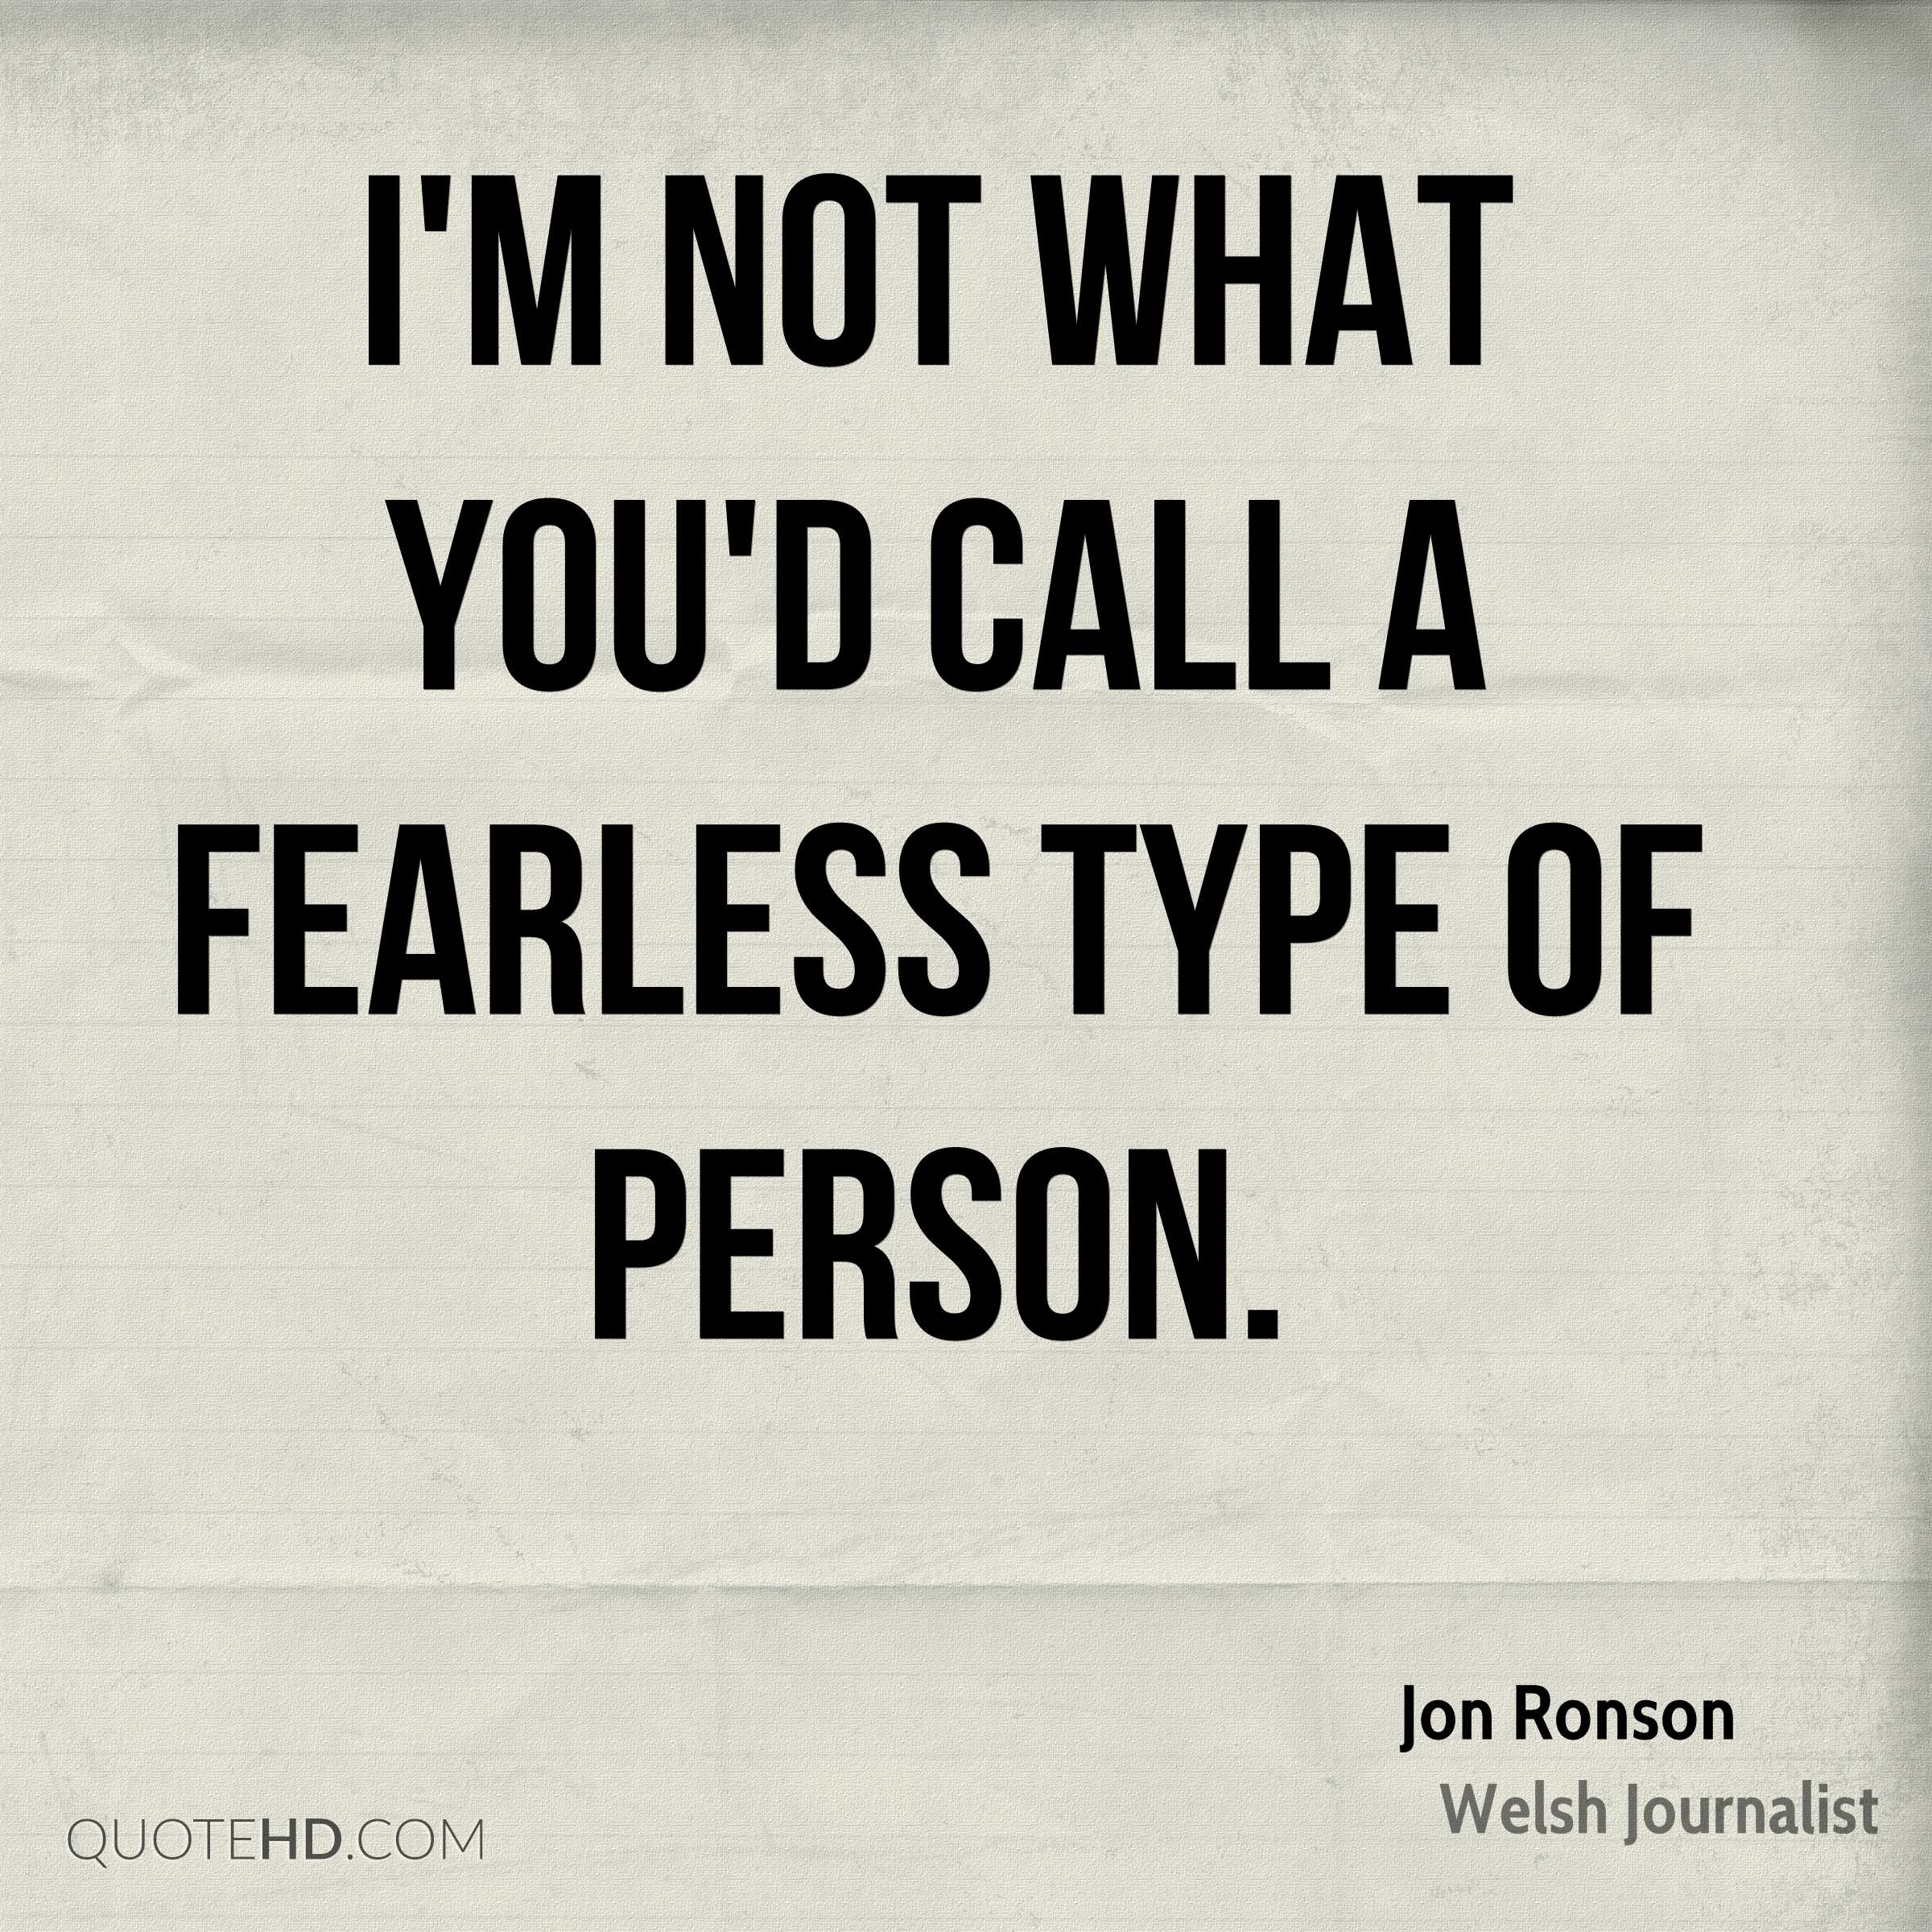 I'm not what you'd call a fearless type of person.